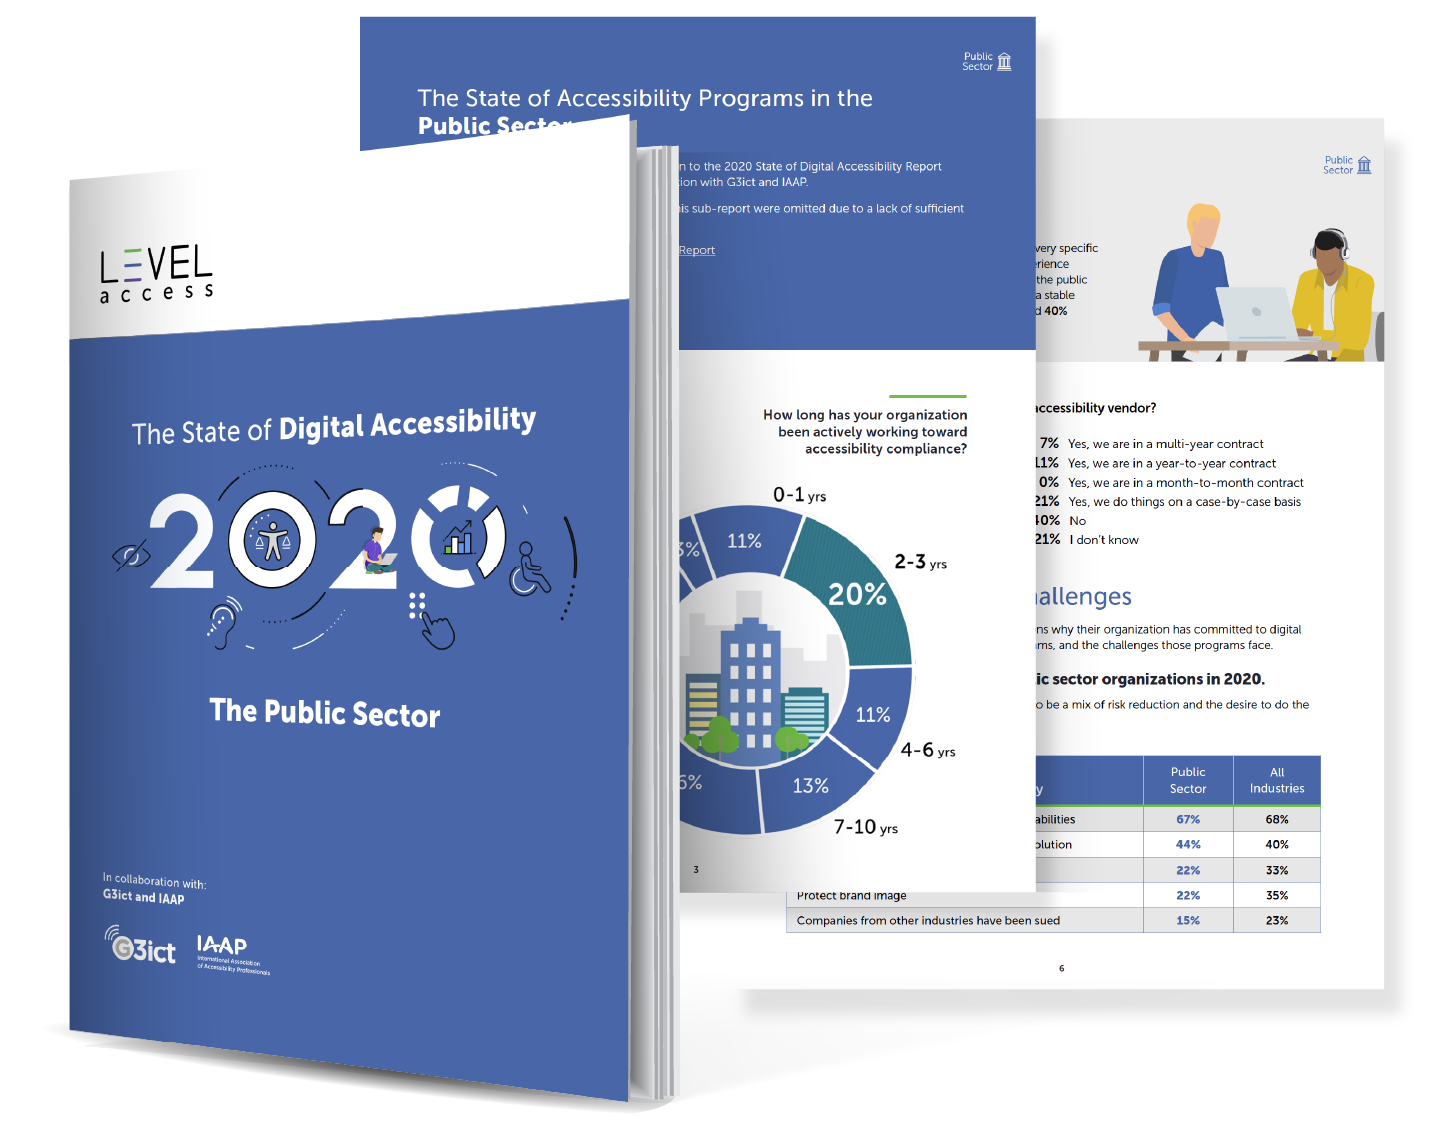 The 2020 State of Digital Accessibility Public Sector Report